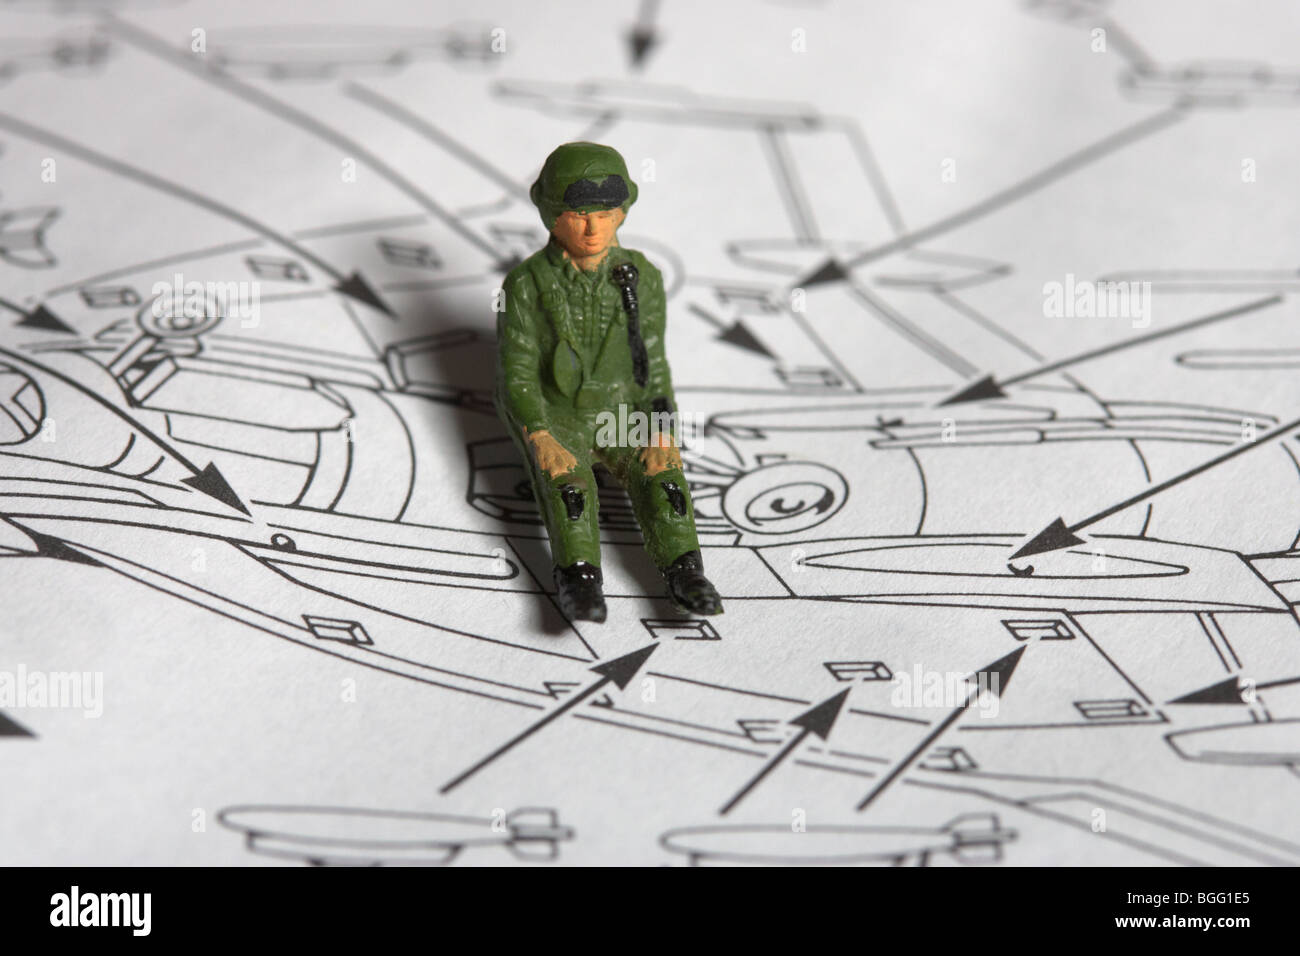 toy plane roughly painted pilot sitting on construction kit with instructions - Stock Image